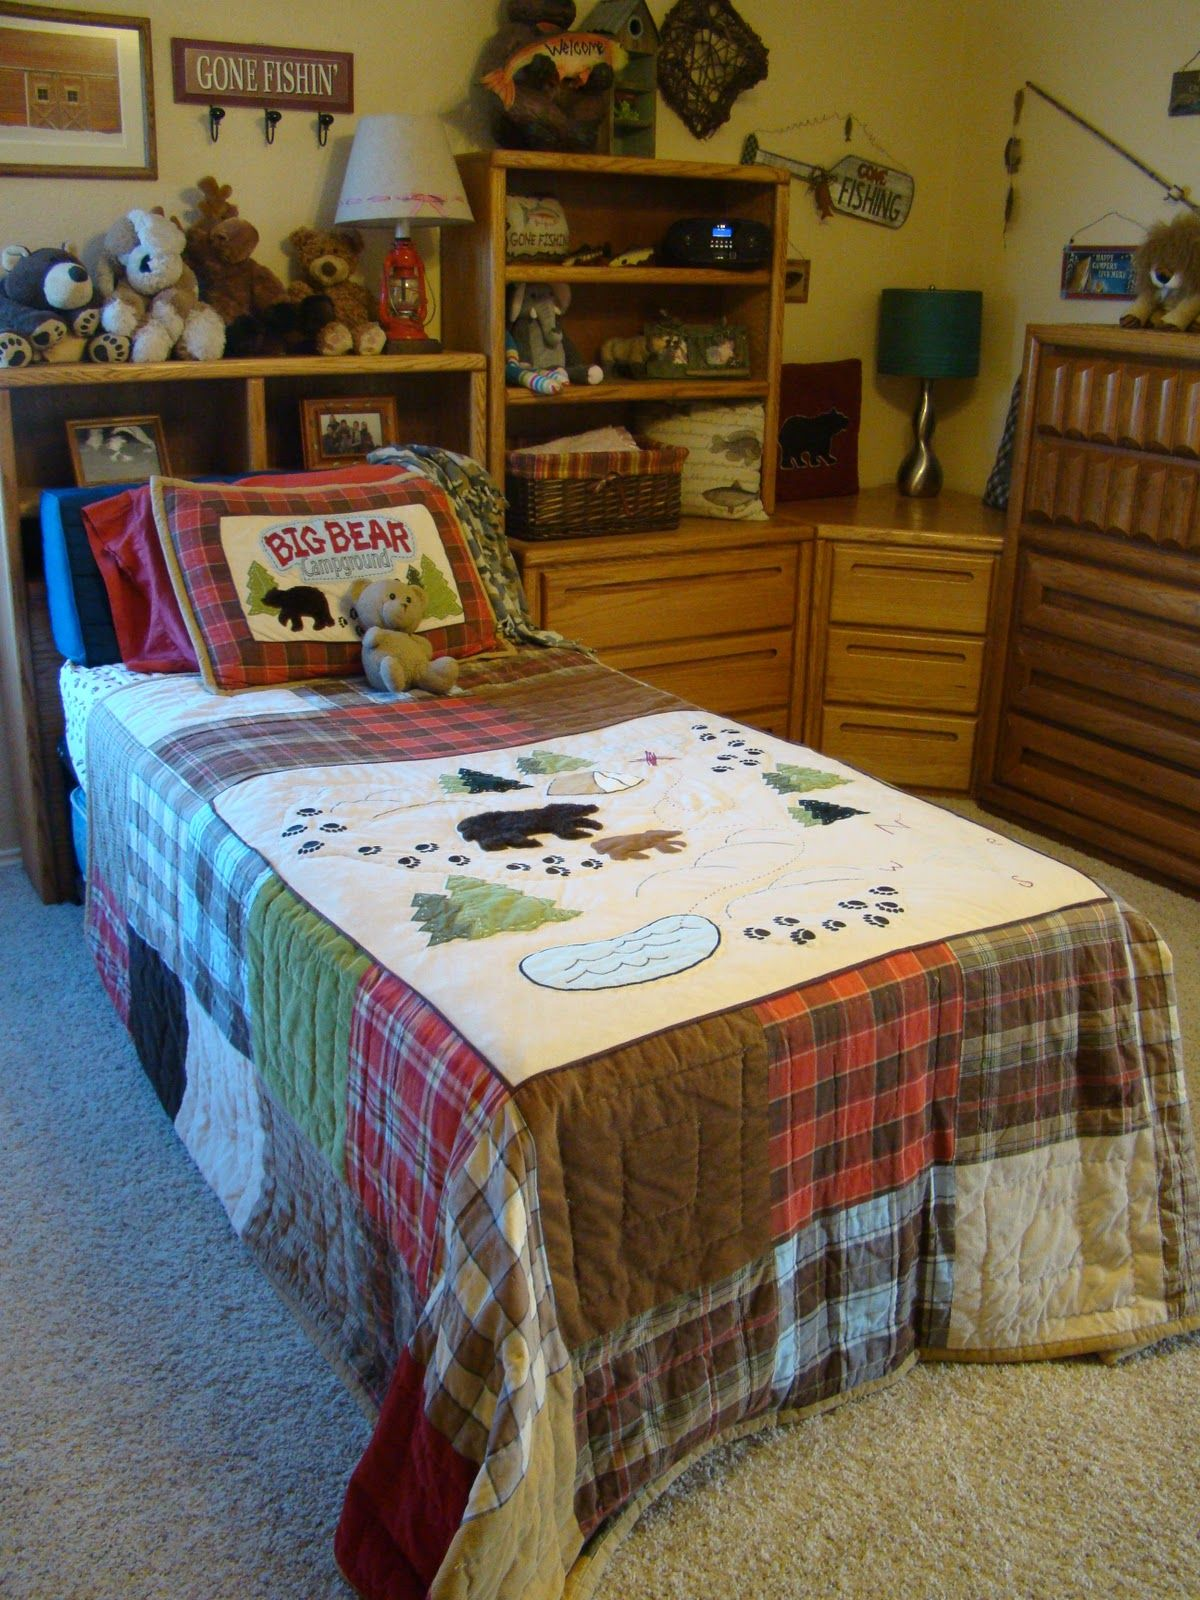 Lodge Bedding Fishing Lodge Bedding By Woolrich From